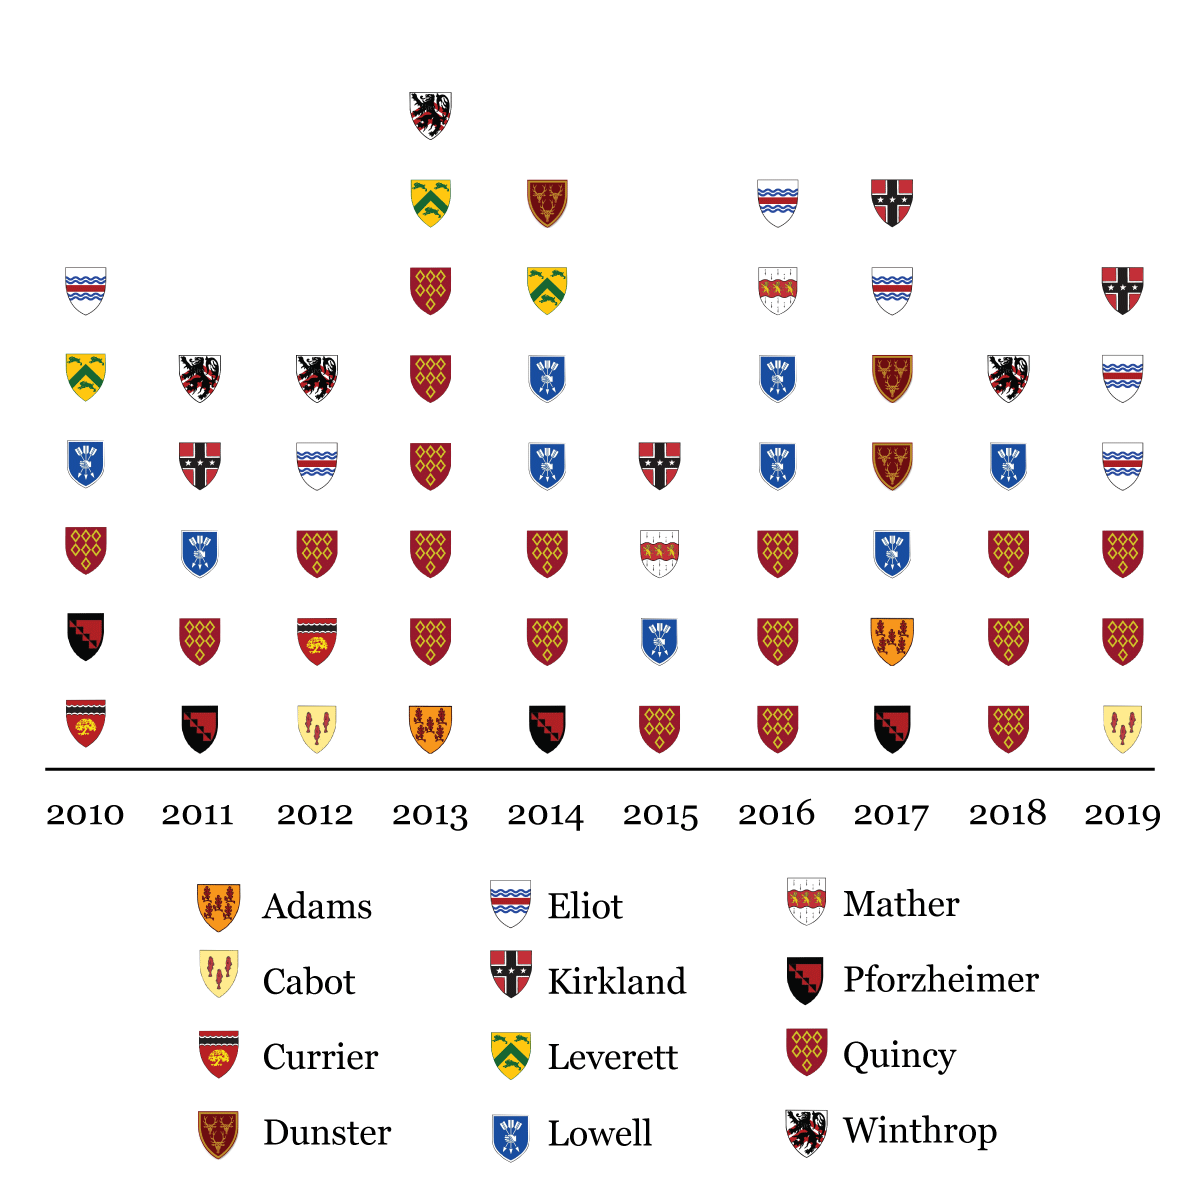 Rhodes and Marshall scholars since 2010 by house.